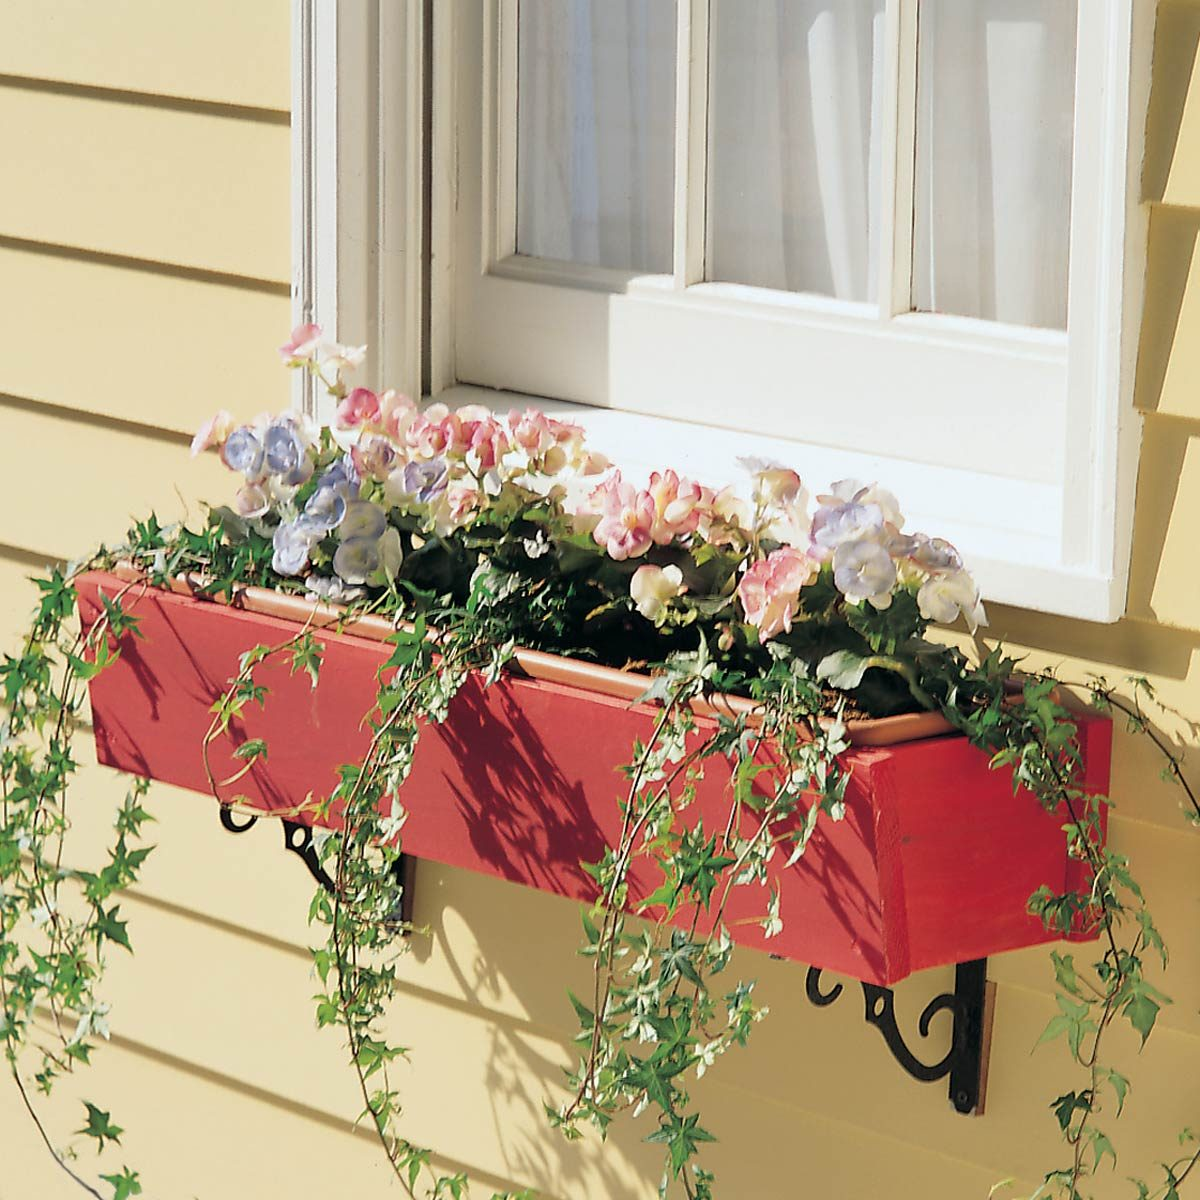 How To Make A Window Box That Is Rot